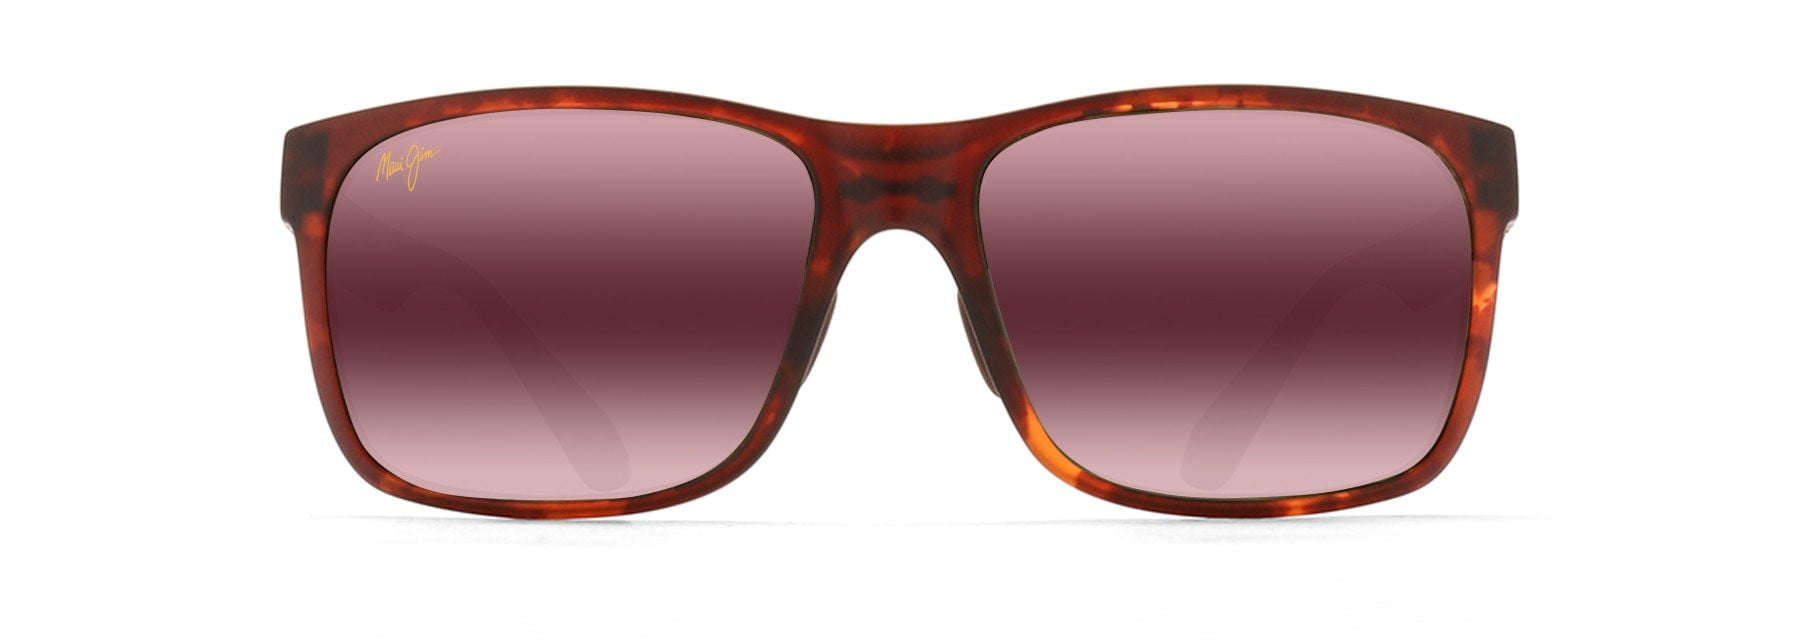 MyMaui Red Sands MM432-007 Sunglasses